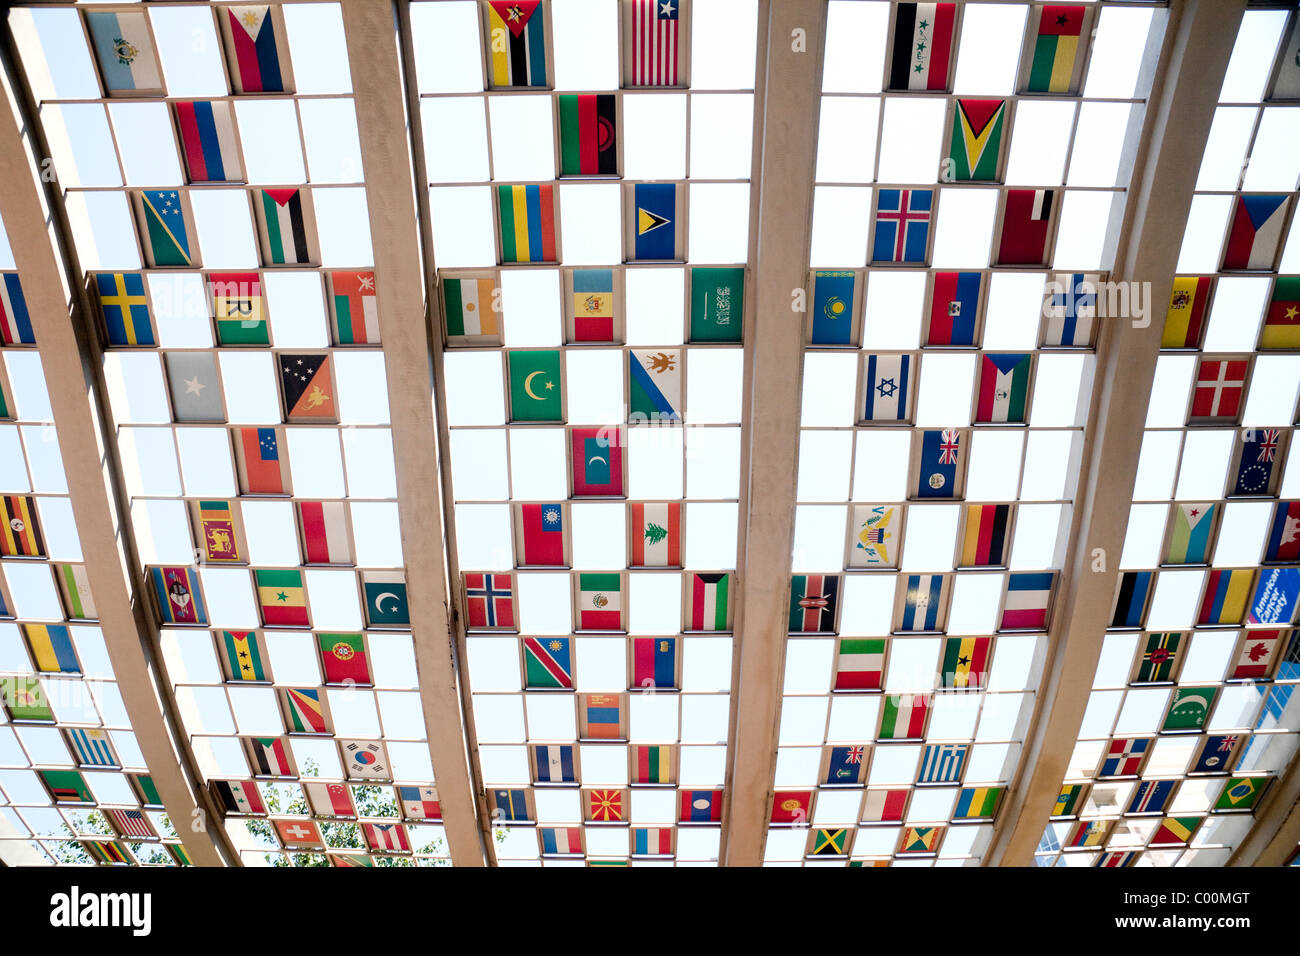 Ceiling Tiles Stock Photos Ceiling Tiles Stock Images Alamy